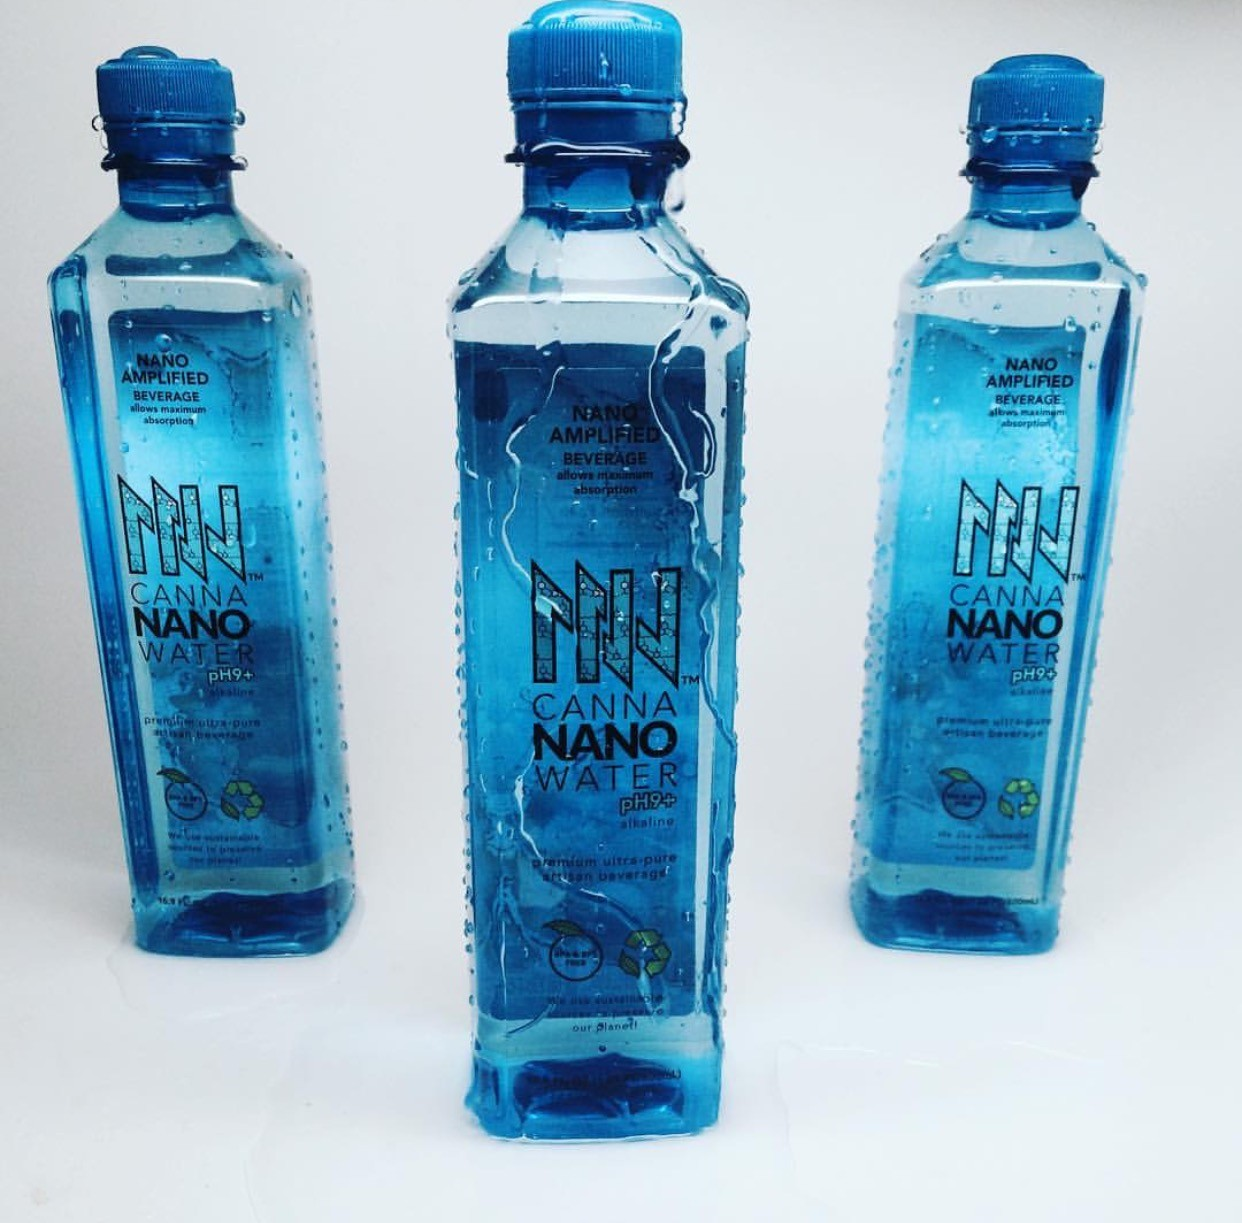 Canna Nano CBD Water Brings Sustainable Spin to Patient